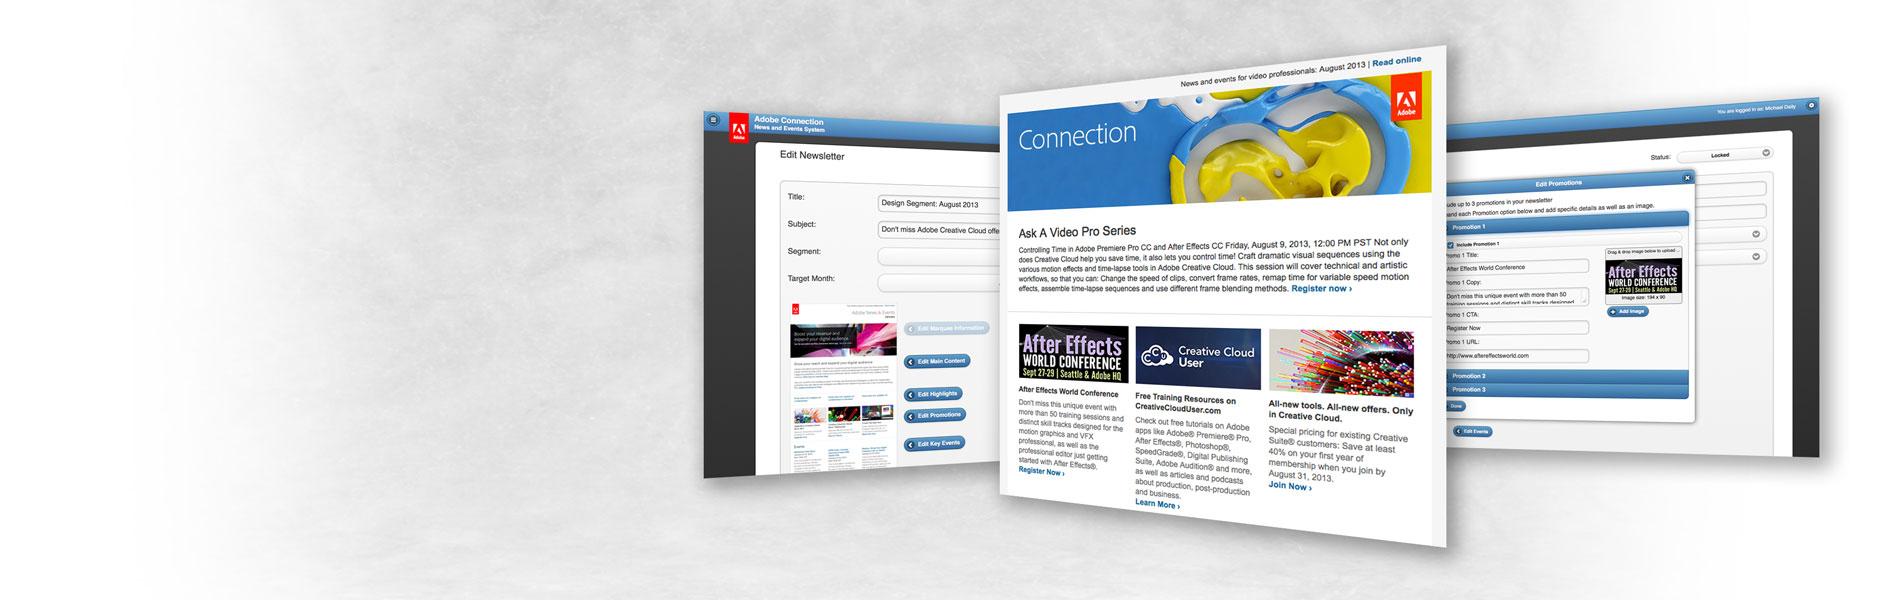 adobe-connection2